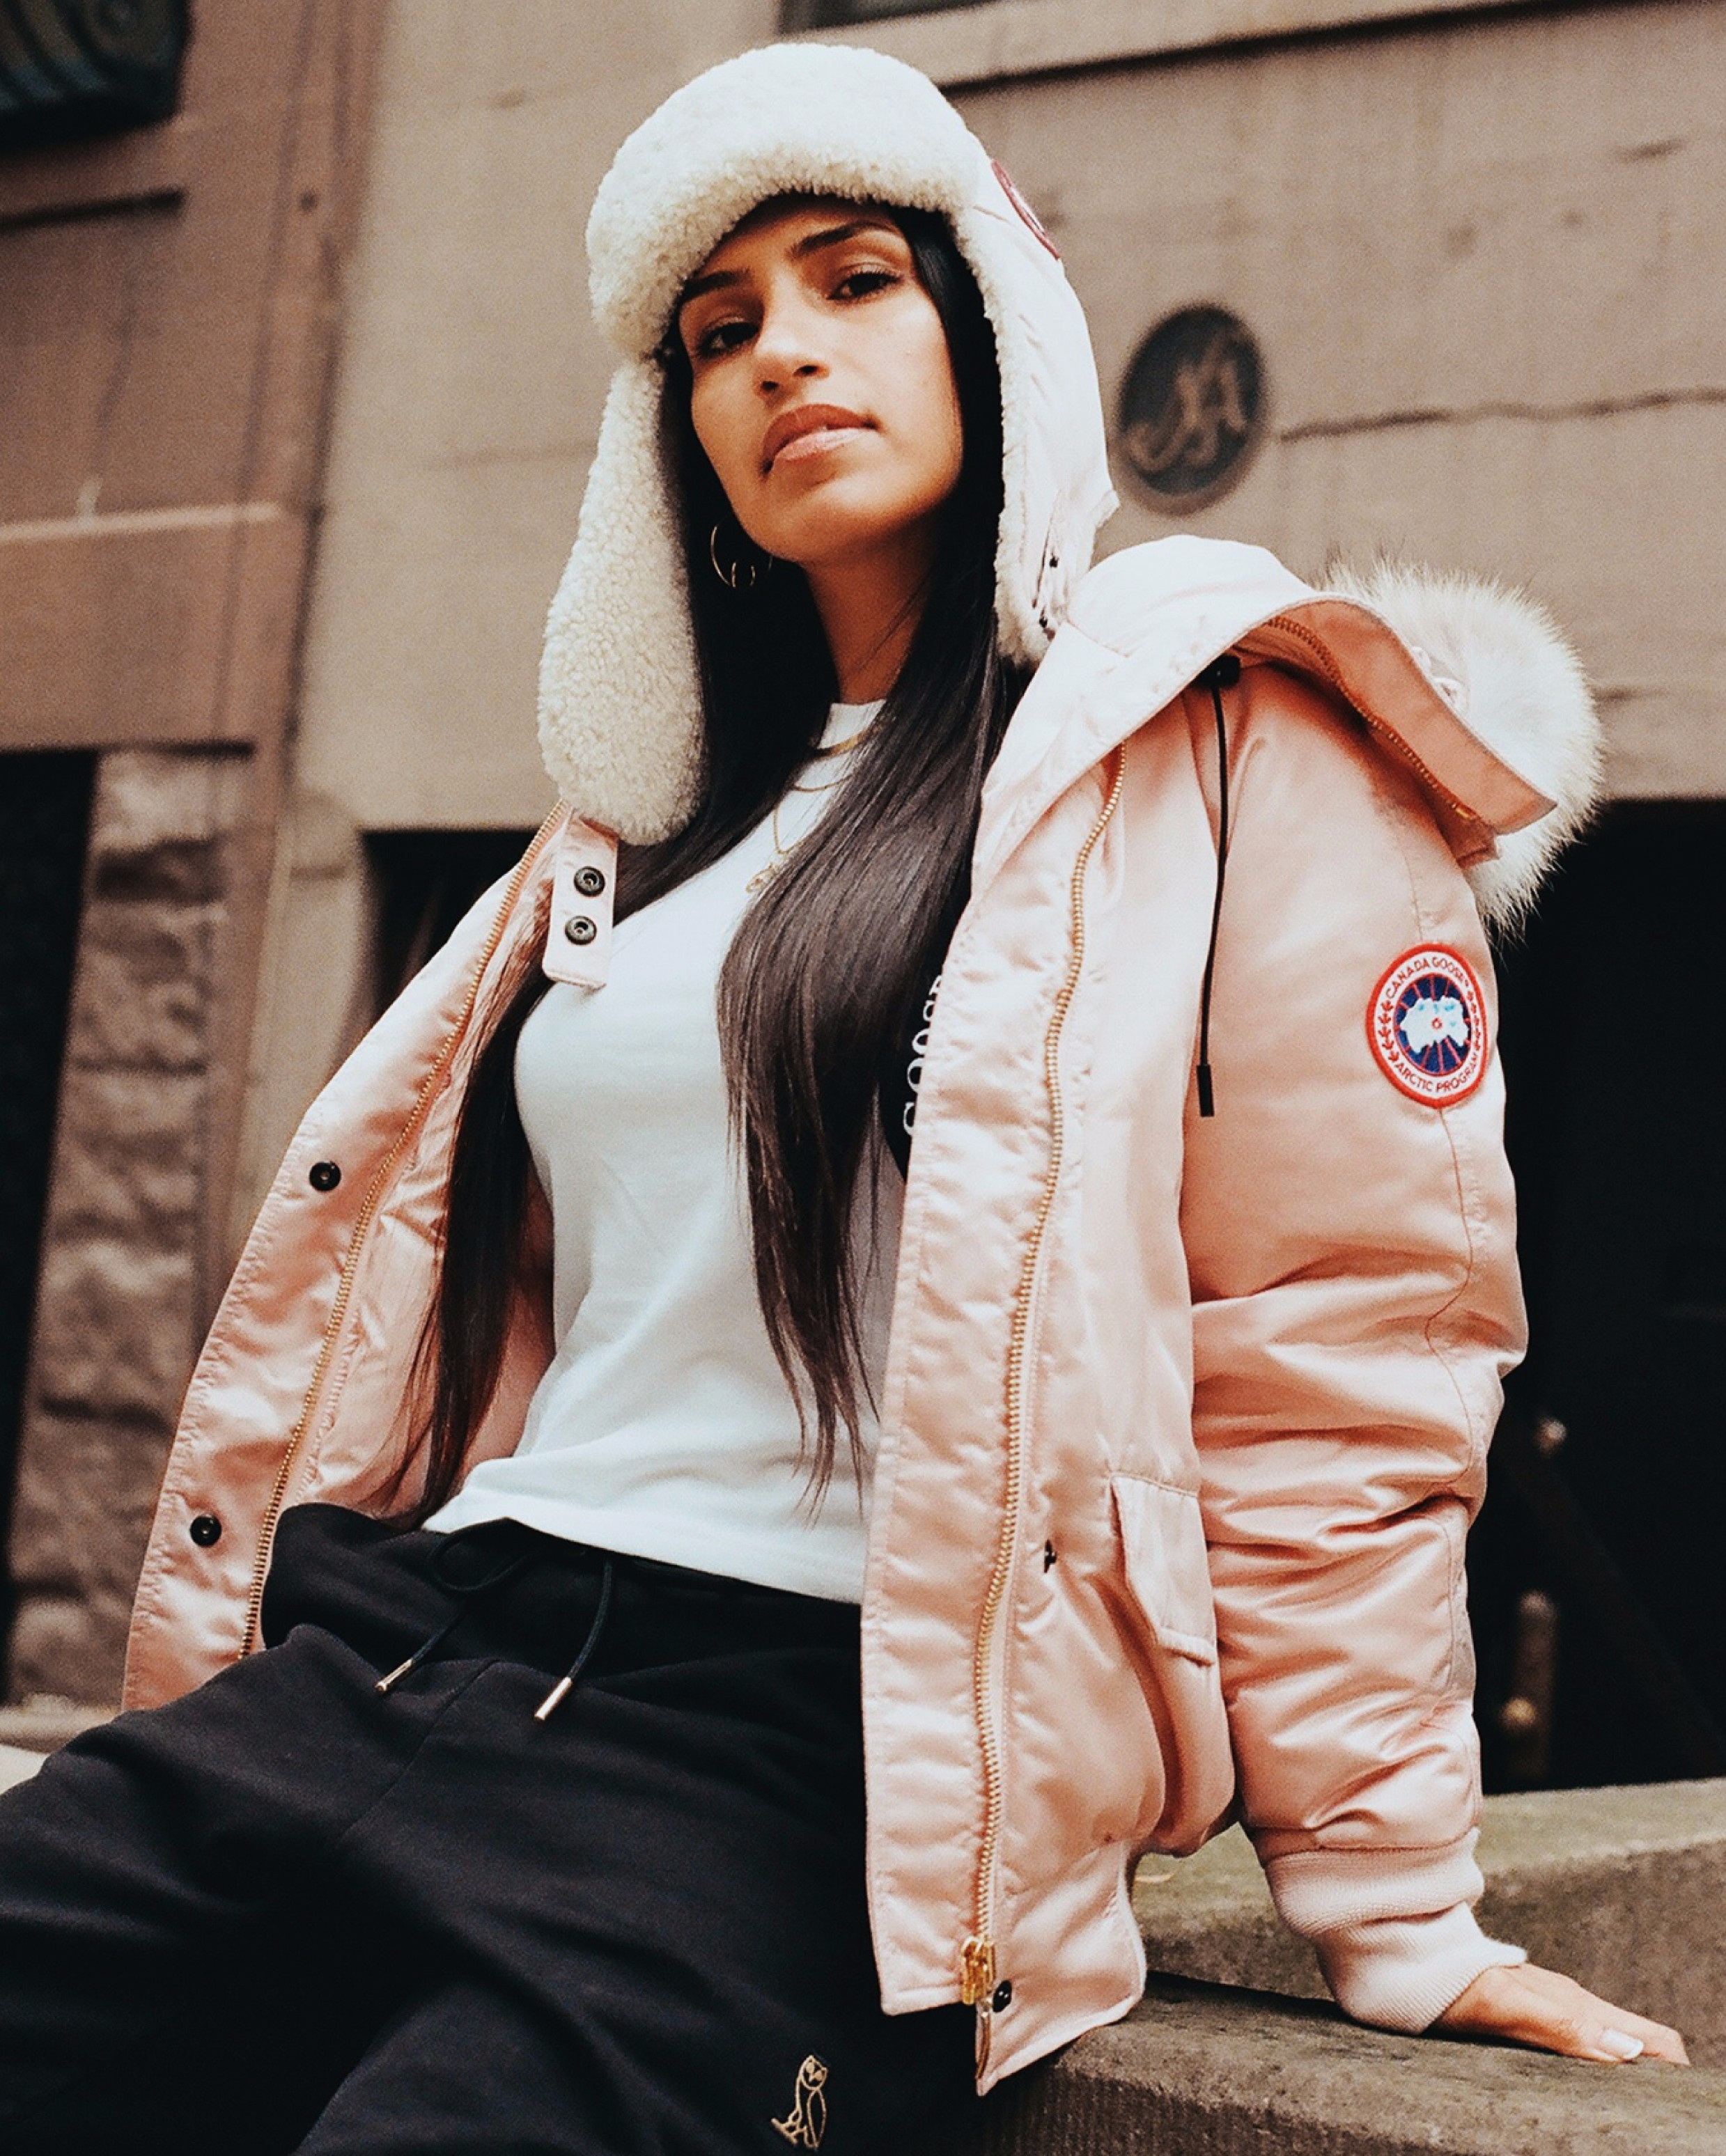 Drake's latest collaboration with Canada Goose is what